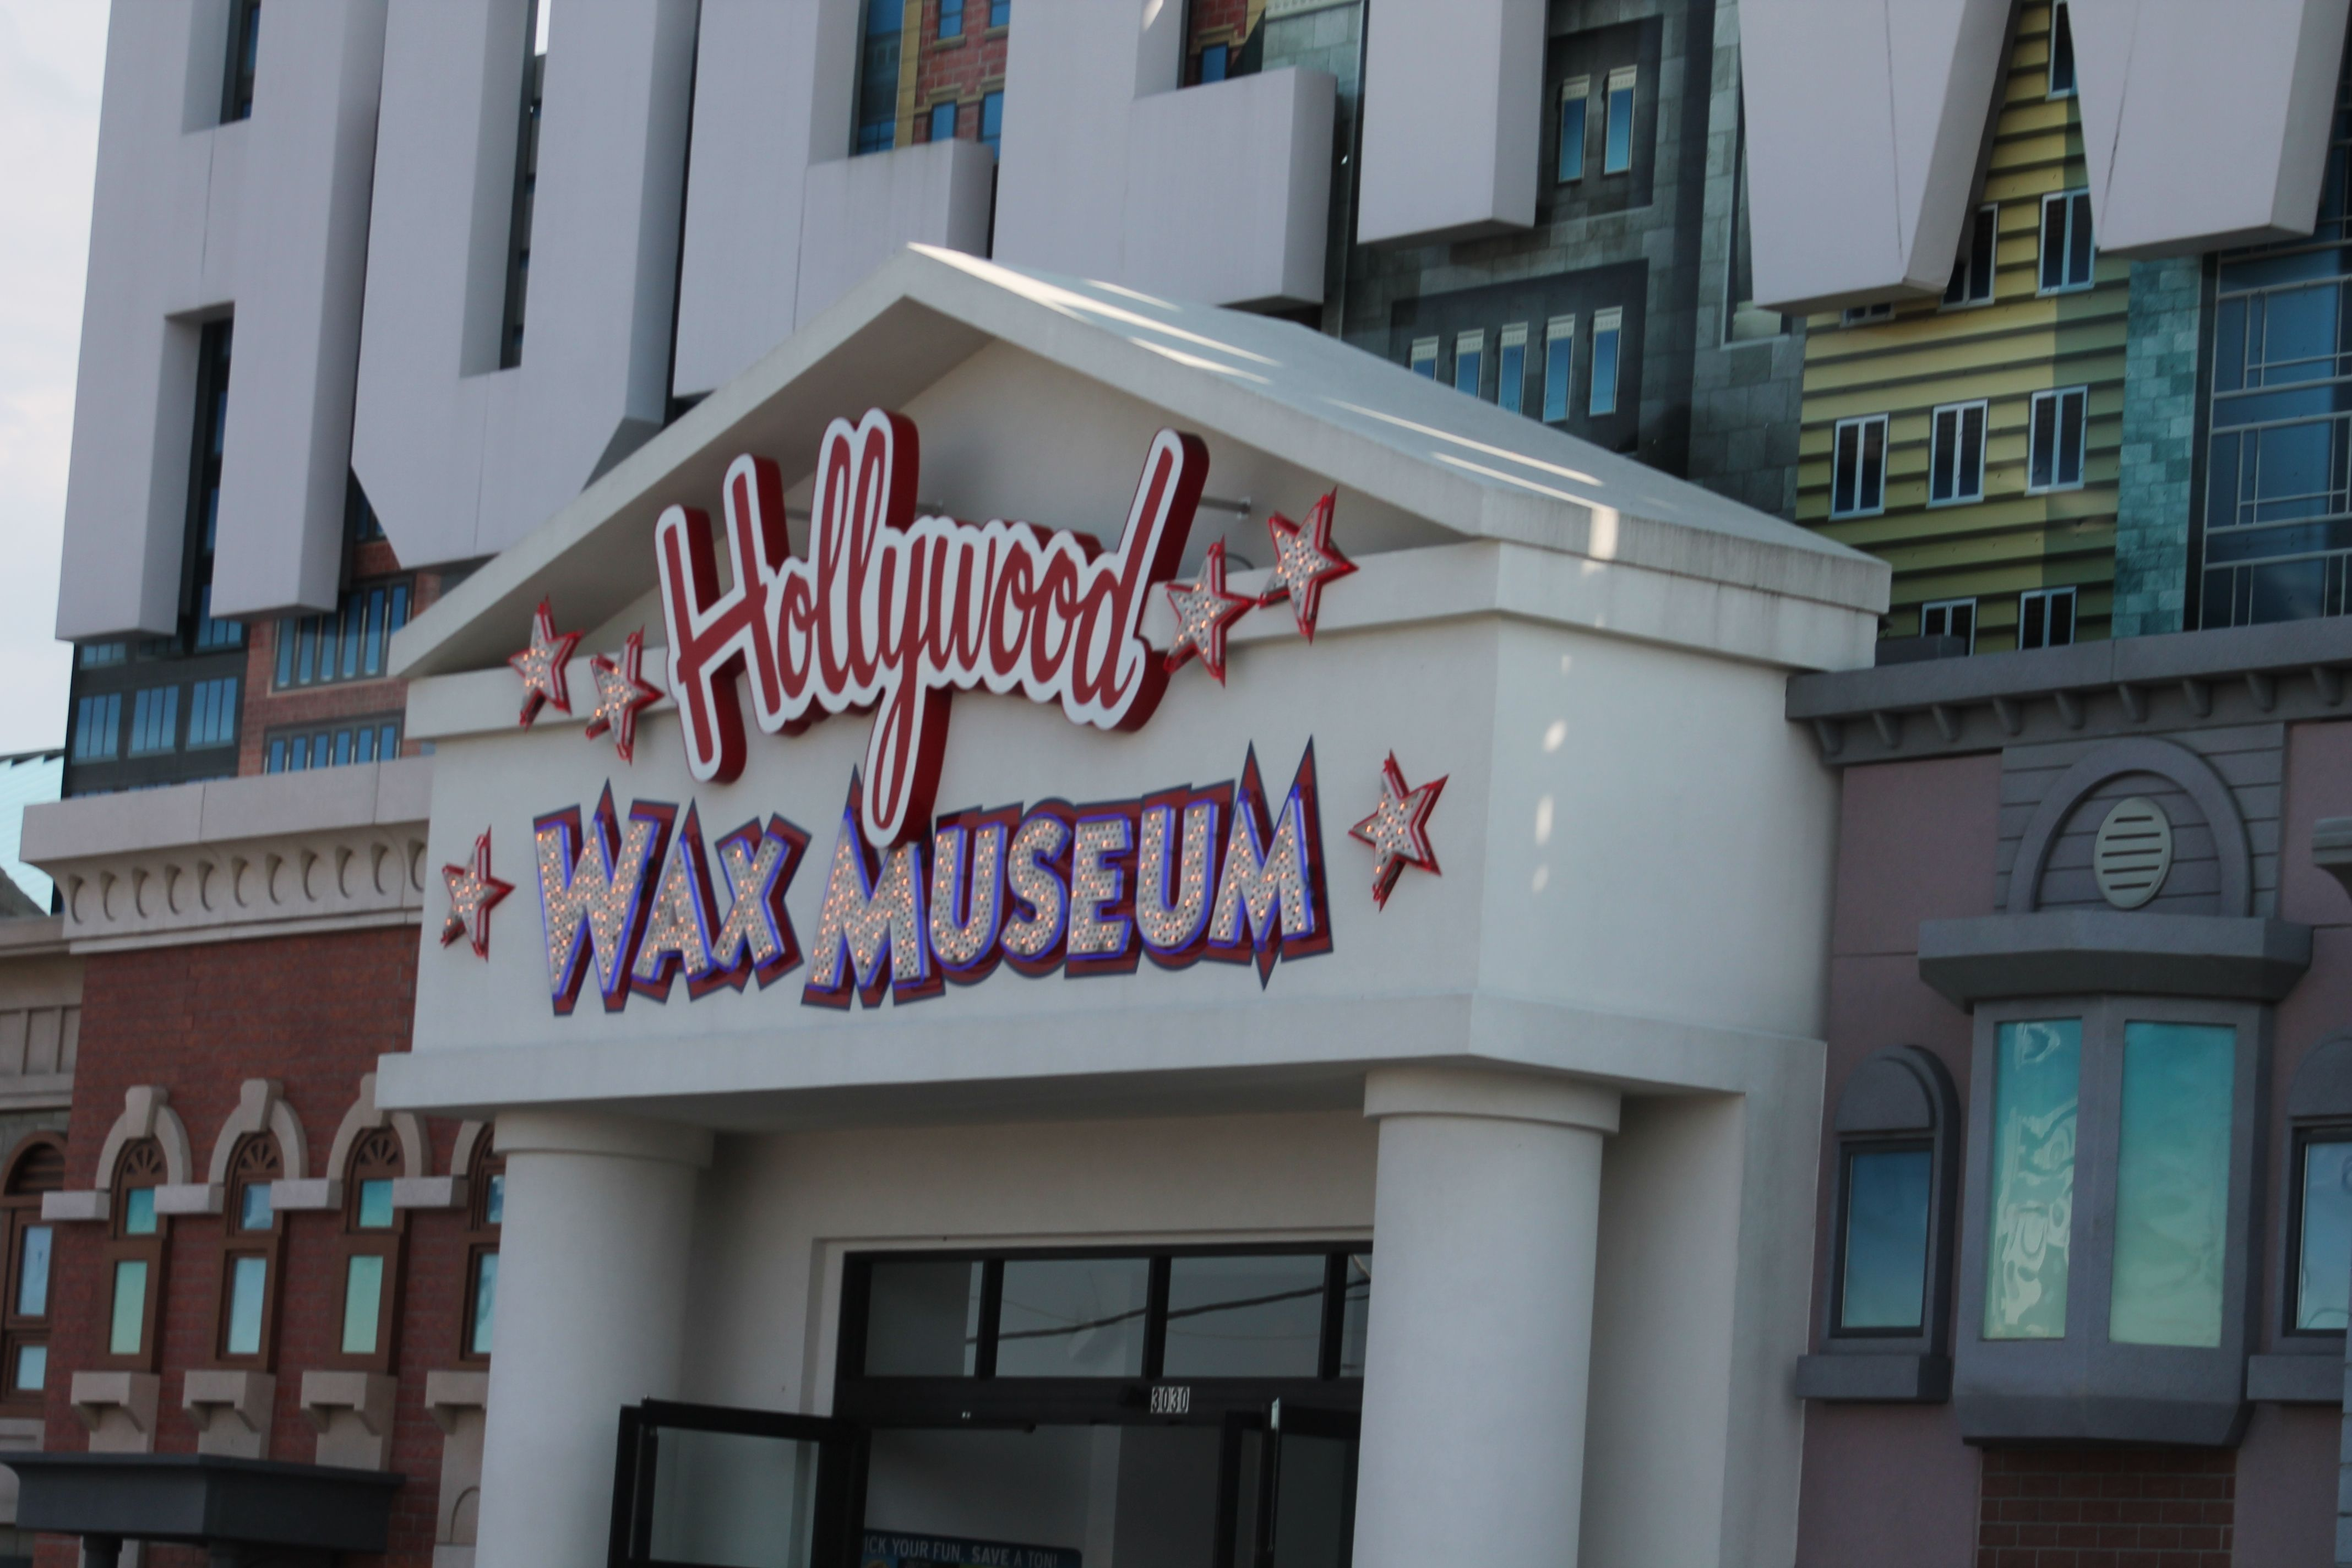 HOLLYWOOD WAX MUSEUM IN BEAUTIFUL BRANSON MISSOURI